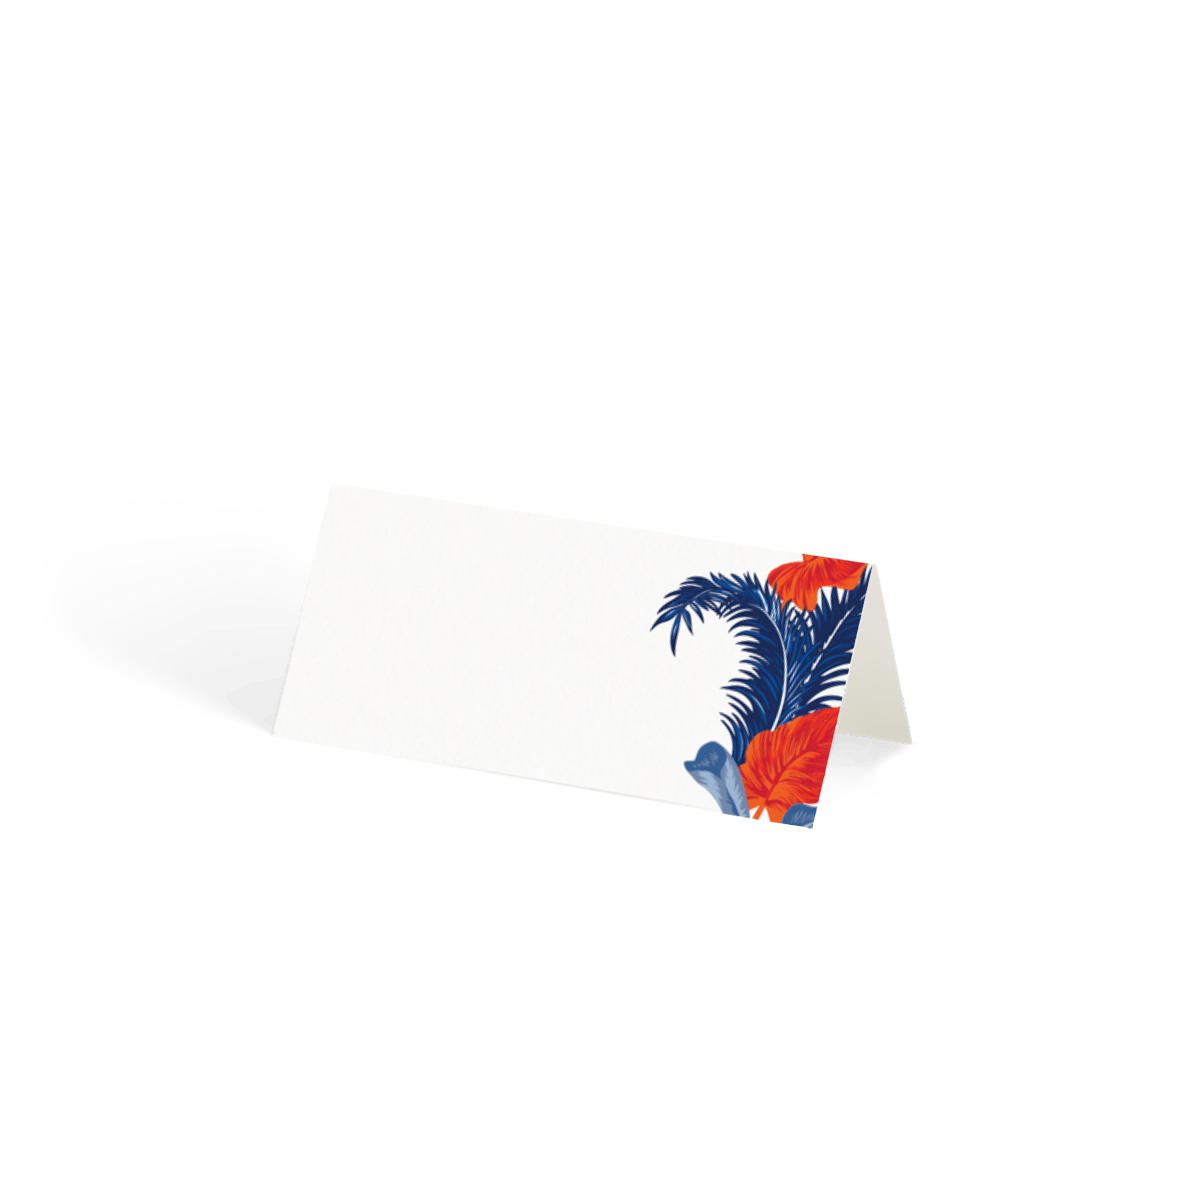 Https%3a%2f%2fwww.papier.com%2fproduct image%2f81359%2f8%2fred blue palms 19521 front 1561724254.png?ixlib=rb 1.1